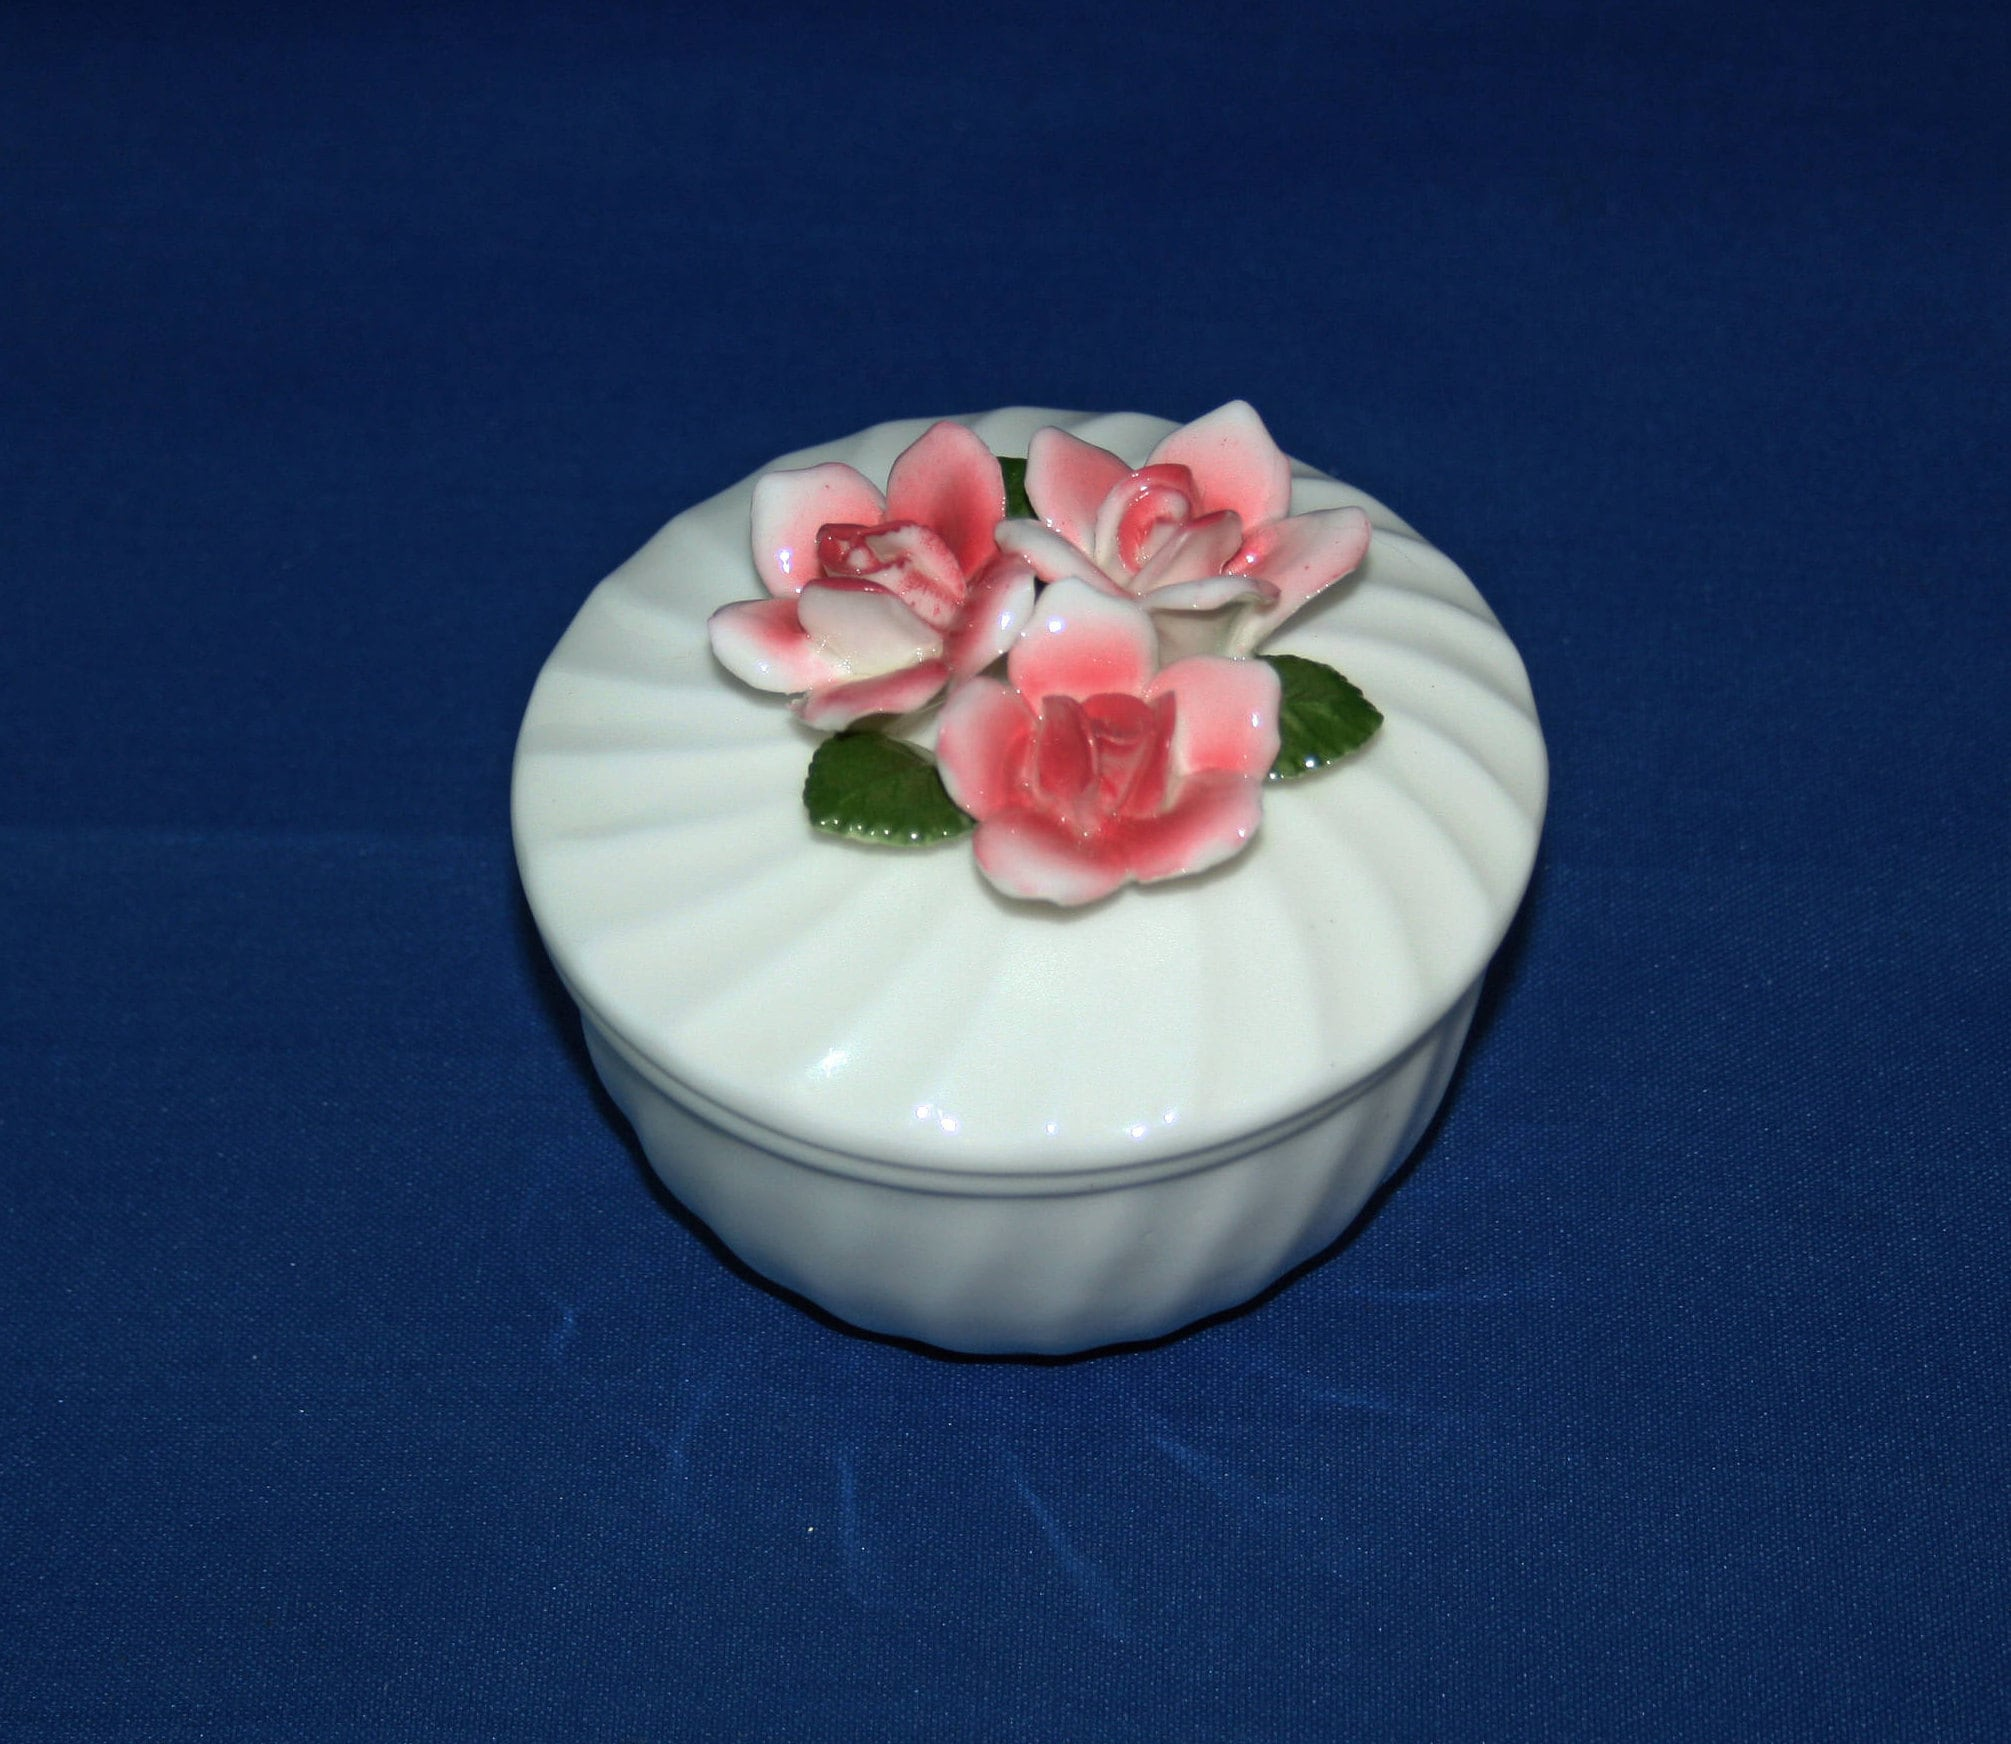 Vintage Square White Porcelain Lidded Trinket Box with Red Yellow /& Pink 3 Dimensional Roses Floral Jewelry Ring Box Container Knick Knack